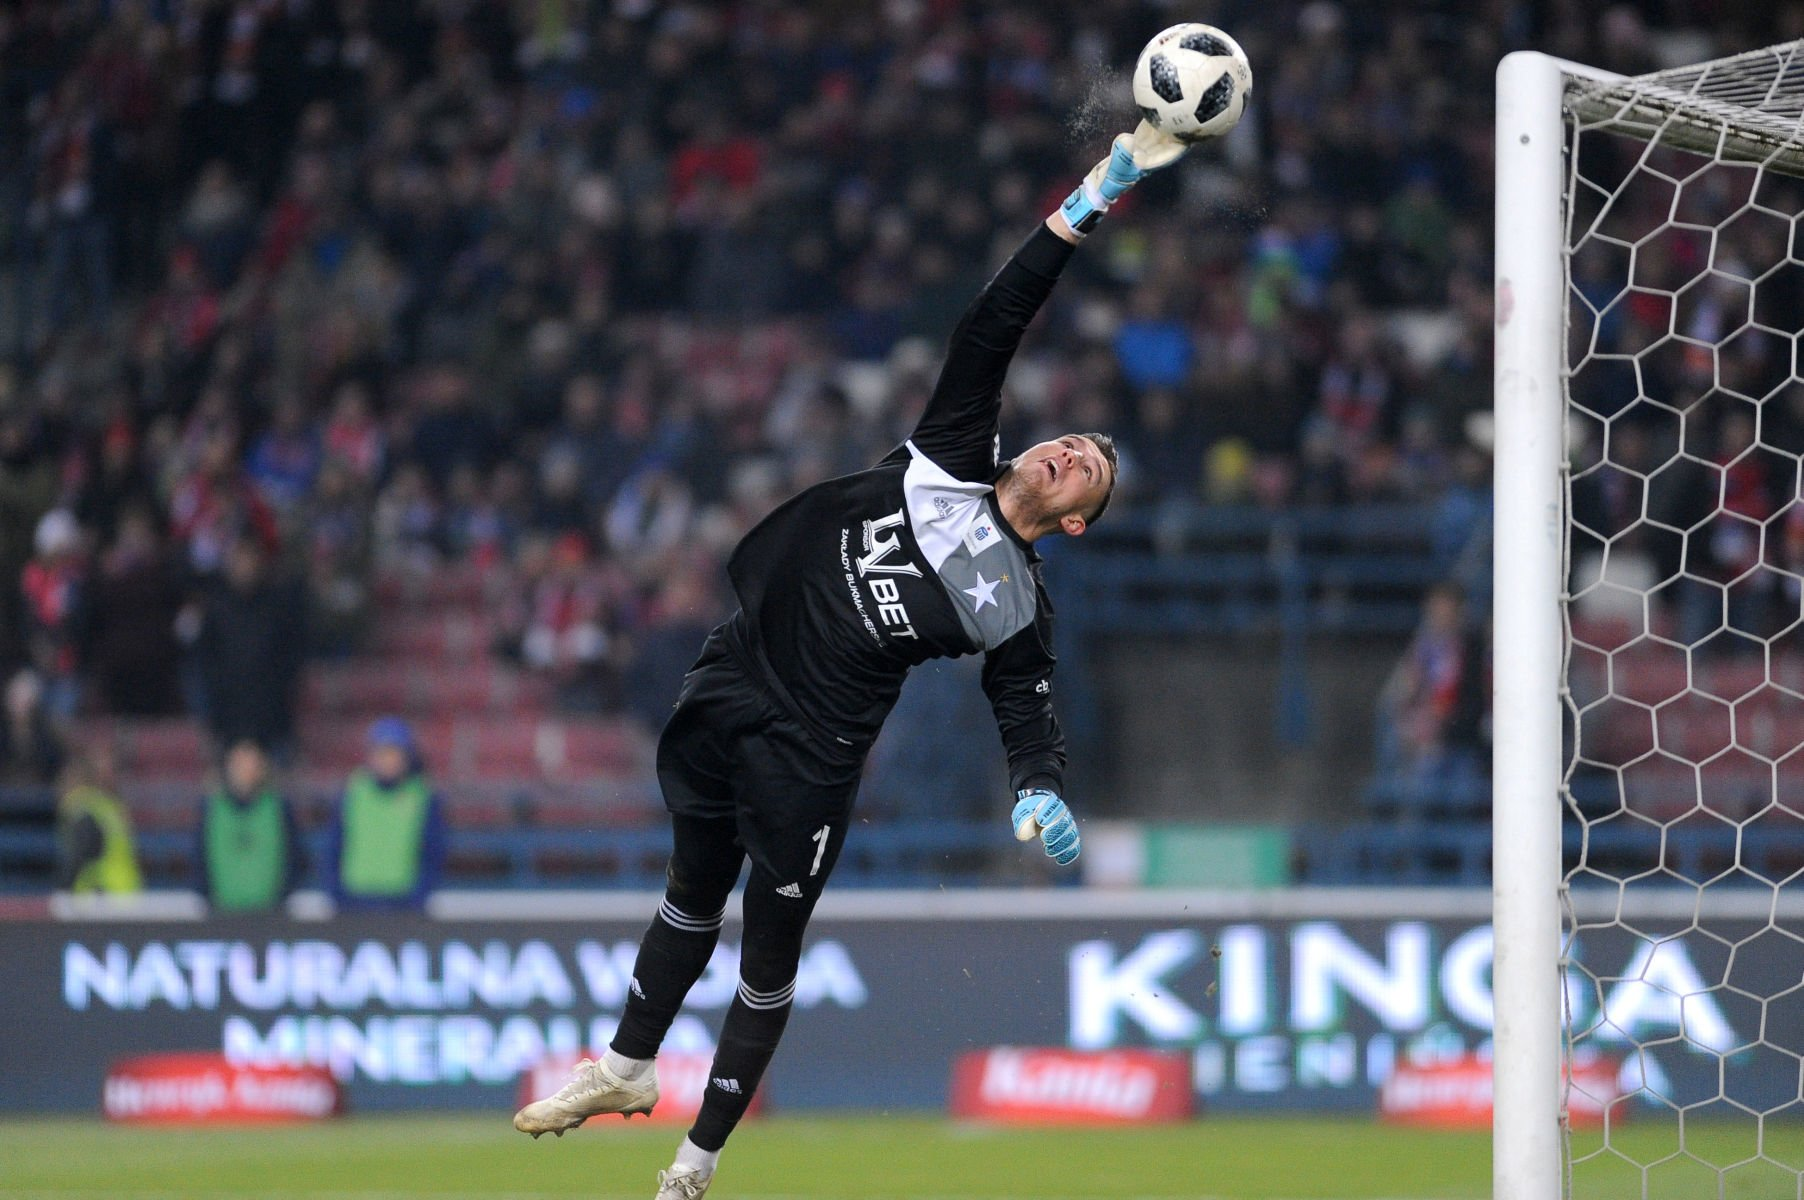 2018.12.21 Krakow Pilka nozna , Lotto Ekstraklasa , sezon 2018/2019 Wisla Krakow - Lech Poznan N/z Mateusz Lis Foto Krzysztof Porebski / PressFocus/NEWSPIX.PL 2018.12.21 Krakow Football , polish Lotto Ekstraklasa , 2018/19 season Wisla Krakow - Lech Poznan Mateusz Lis Credit: Krzysztof Porebski / PressFocus --- Newspix.pl *** Local Caption *** www.newspix.pl mail us: info@newspix.pl call us: 0048 022 23 22 222 --- Polish Picture Agency by Ringier Axel Springer Poland